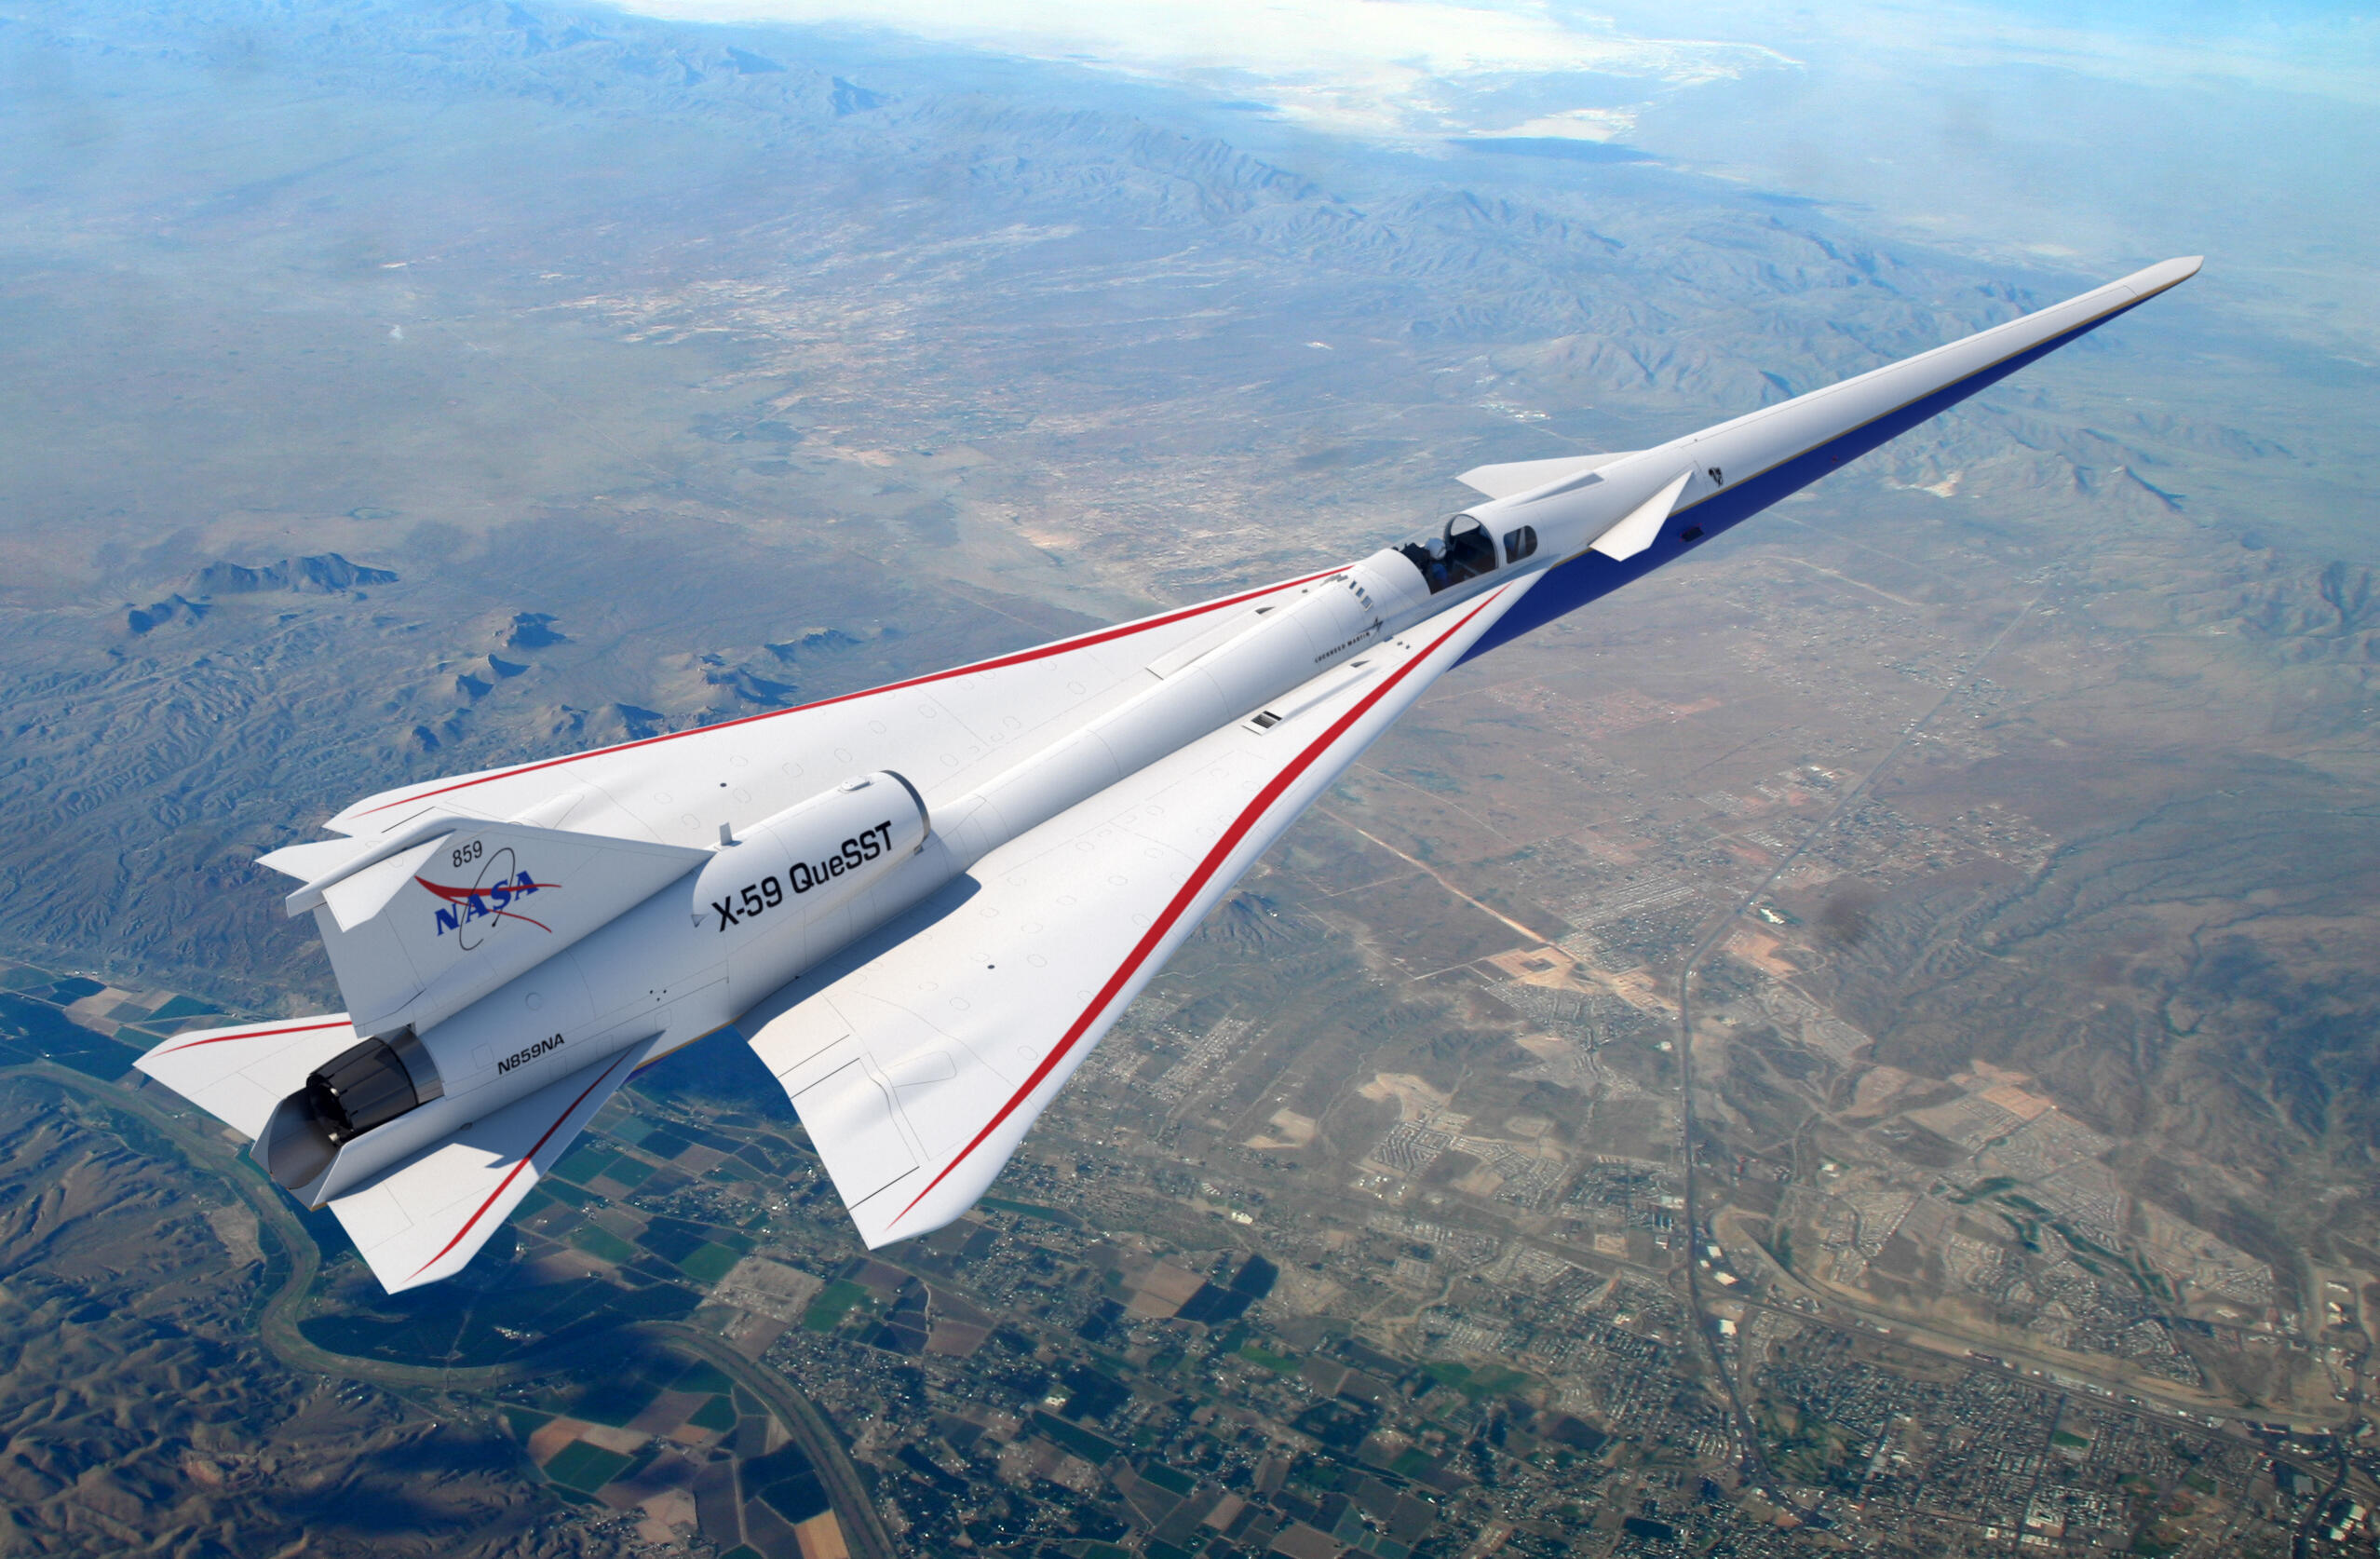 A render of the X-59 quiet supersonic airplane flying above the desert.